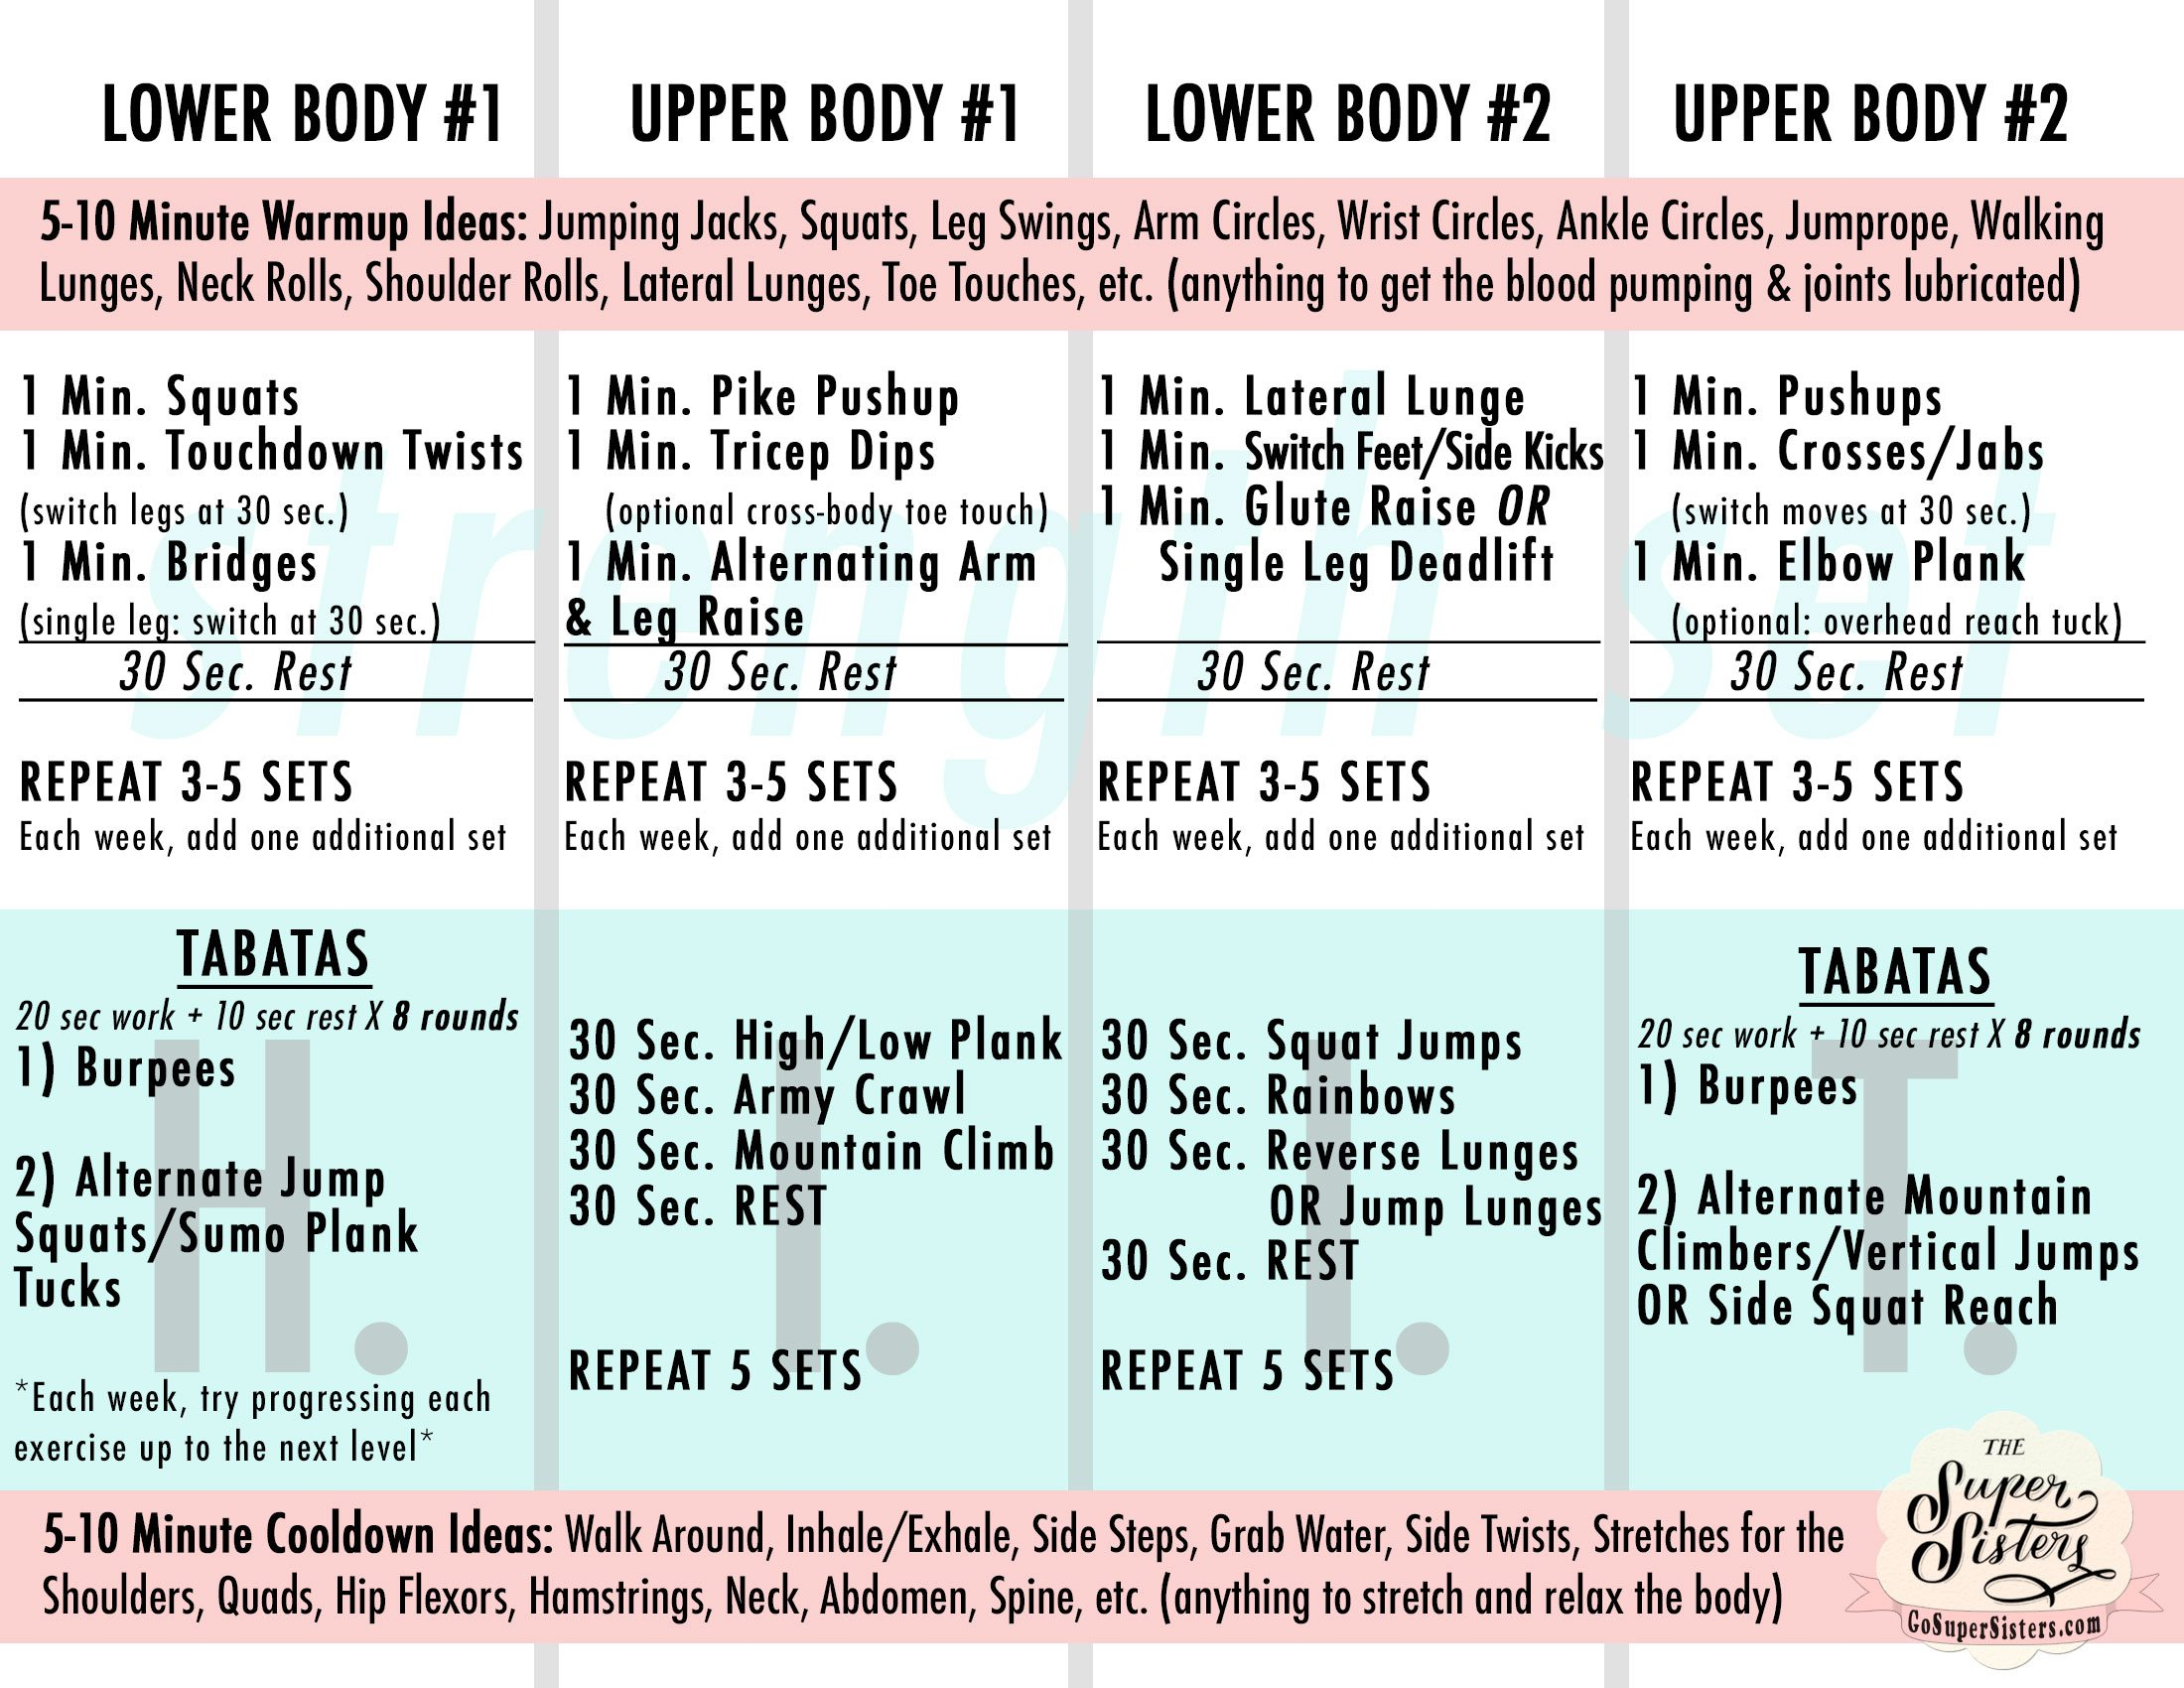 Upper Lower Body Routines Quick Reference Guide